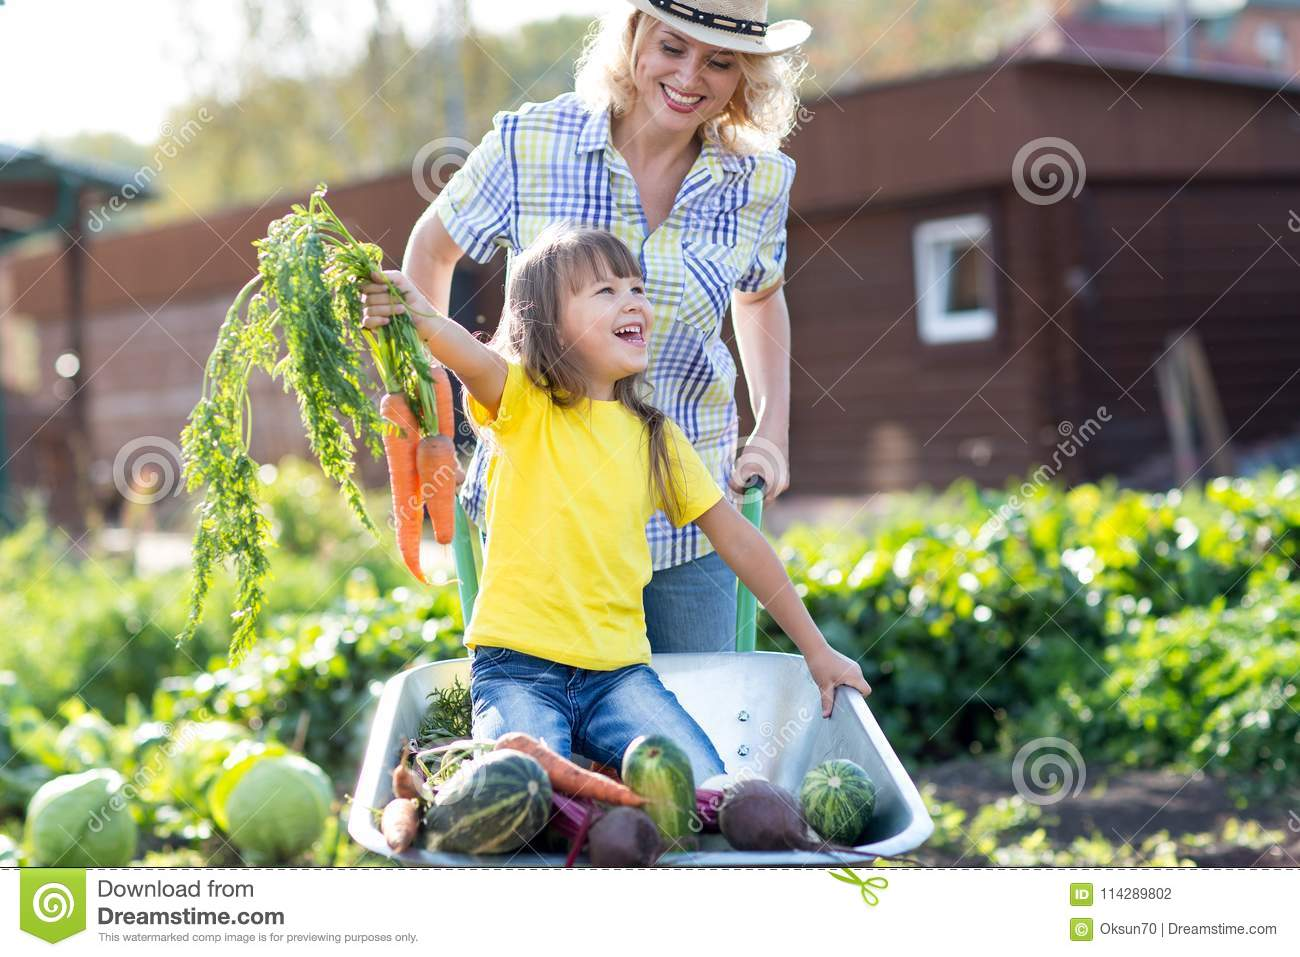 Mother and son playing baseball in yard Stock Photo - Alamy